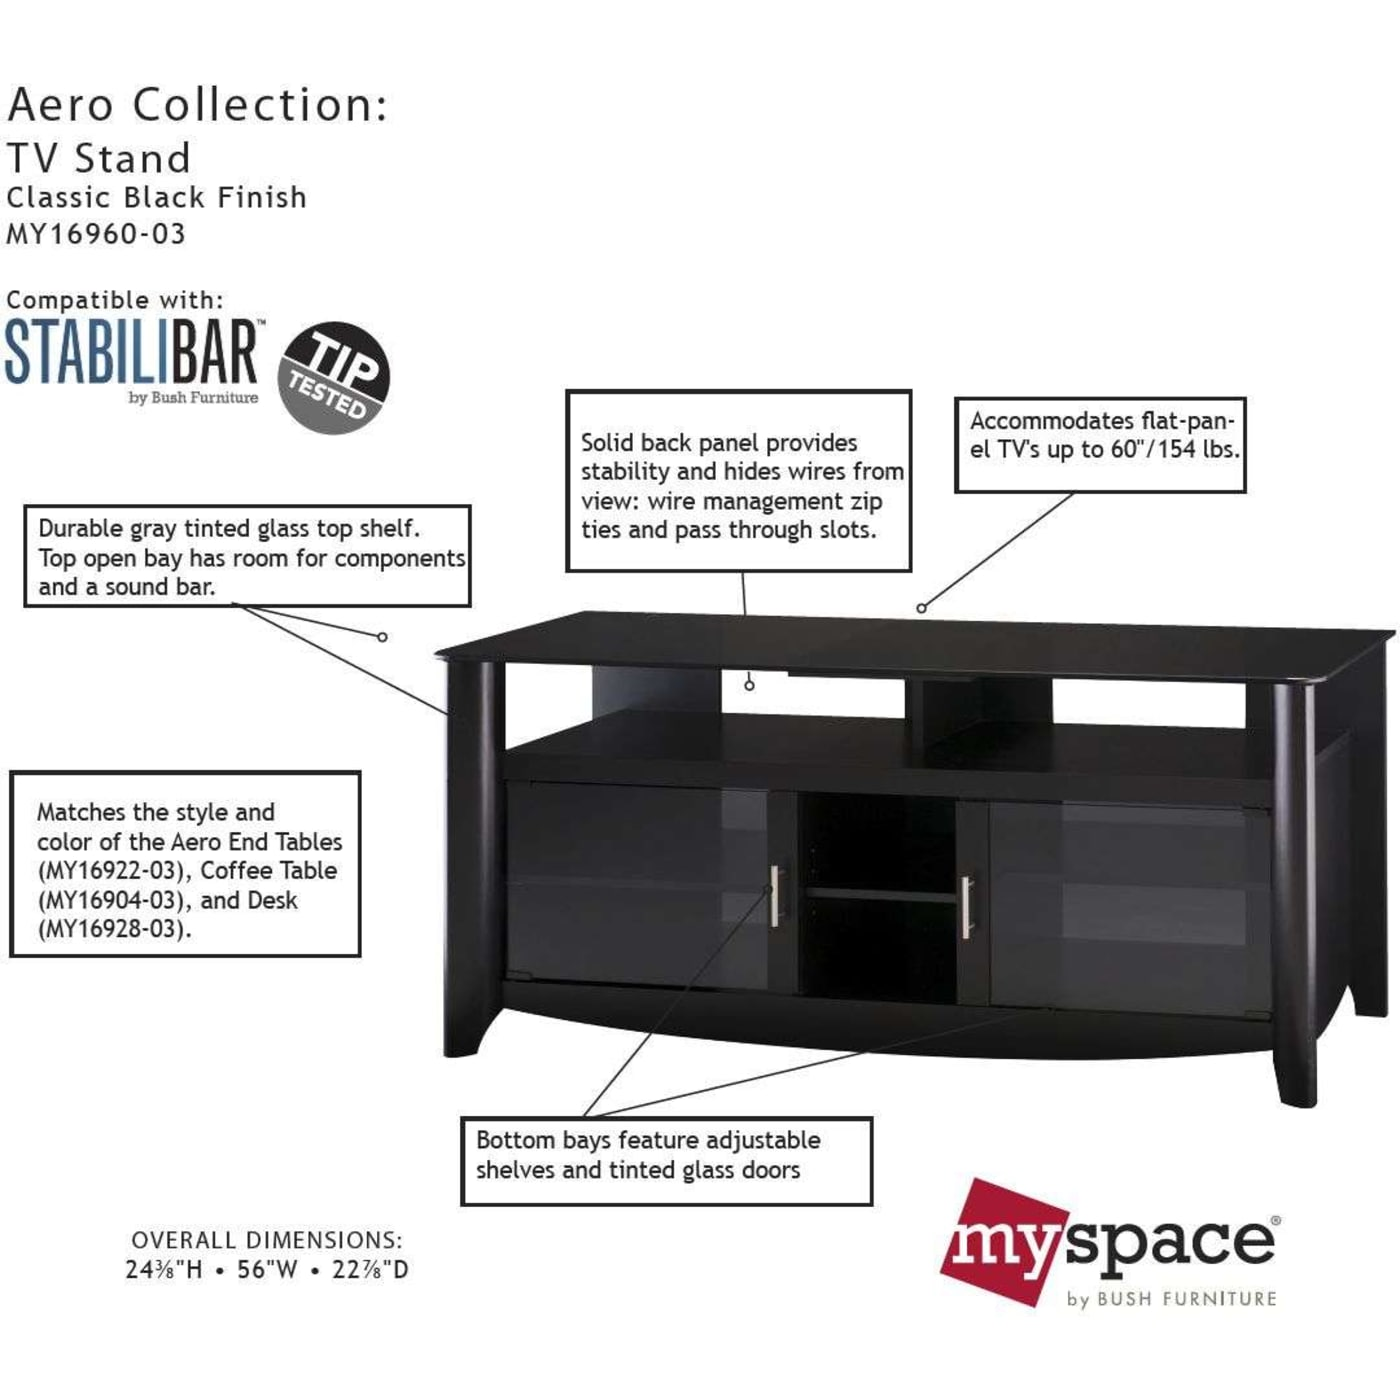 Please See Specifications For Detailed Information Furniture Colors May Vary Based On Computer Monitor And Room Lighting